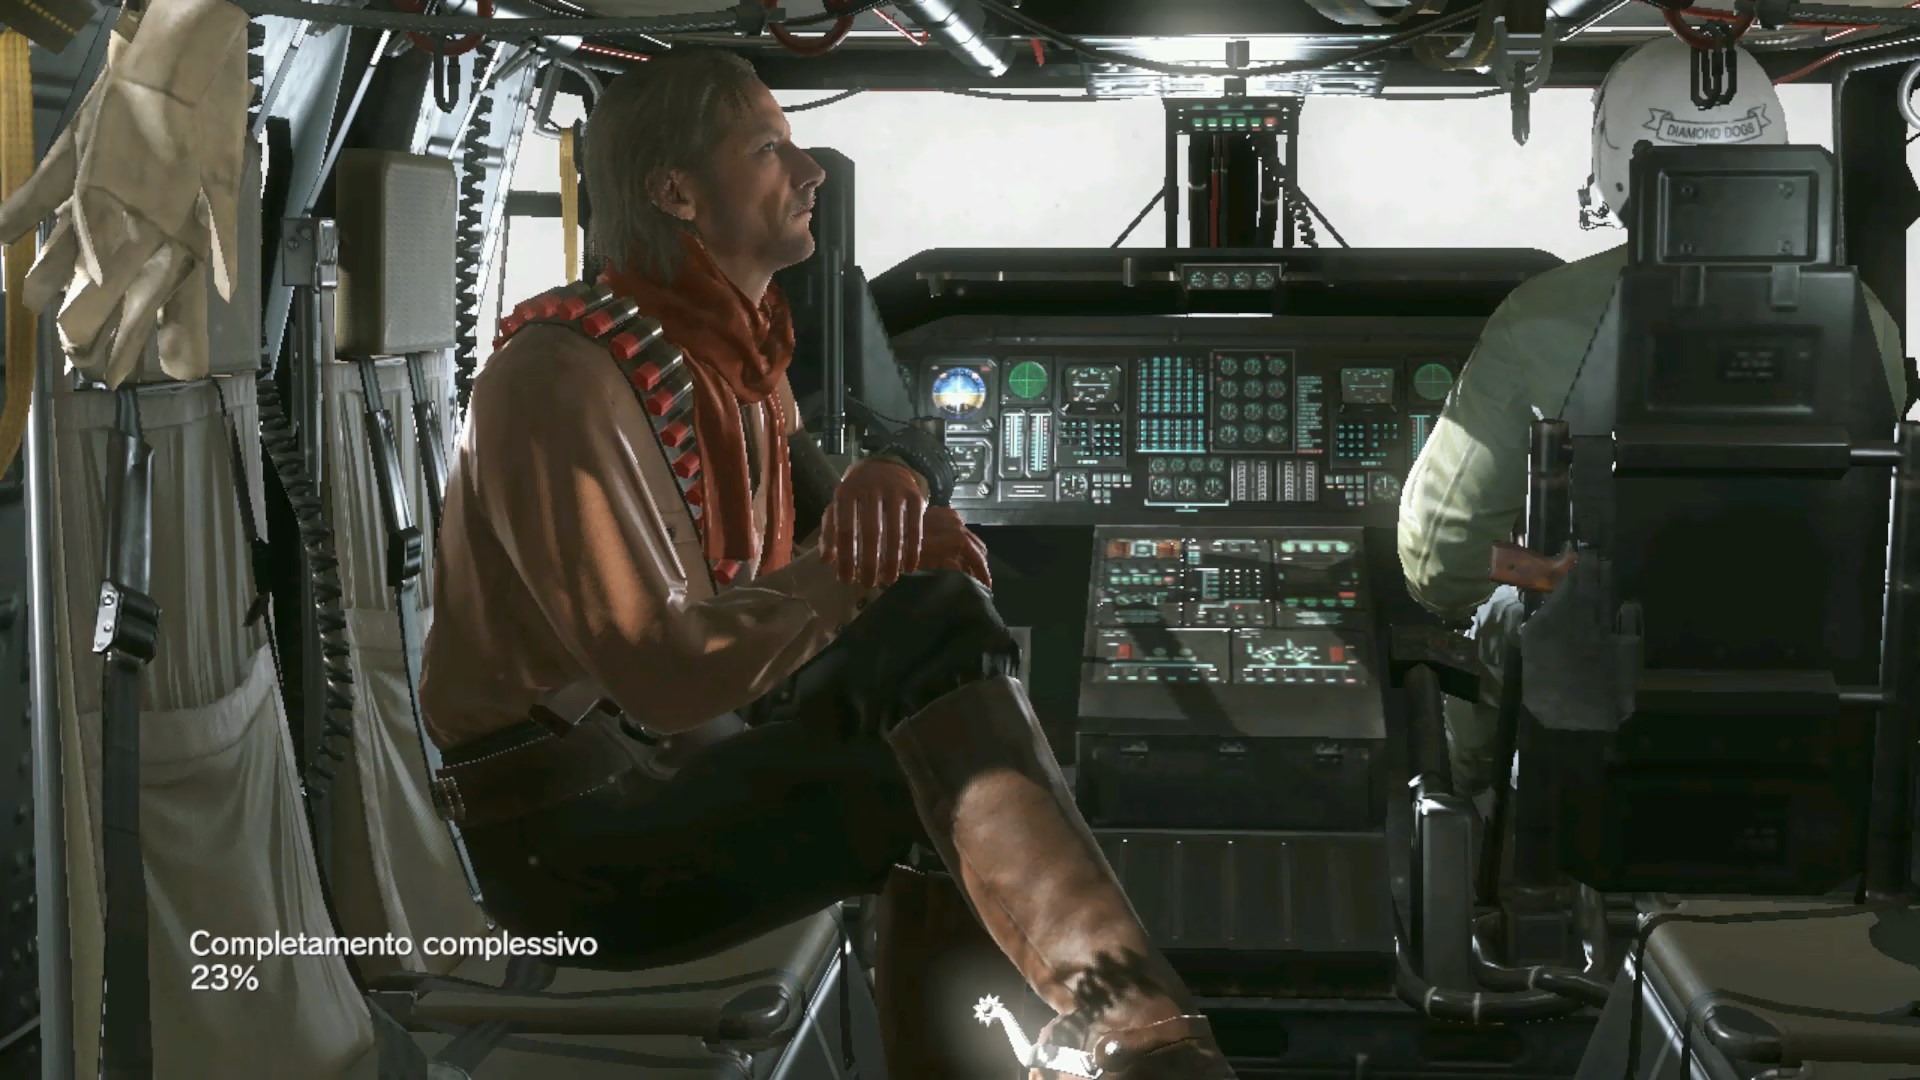 Ocelot Model Swap For Quiet At Metal Gear Solid V: The